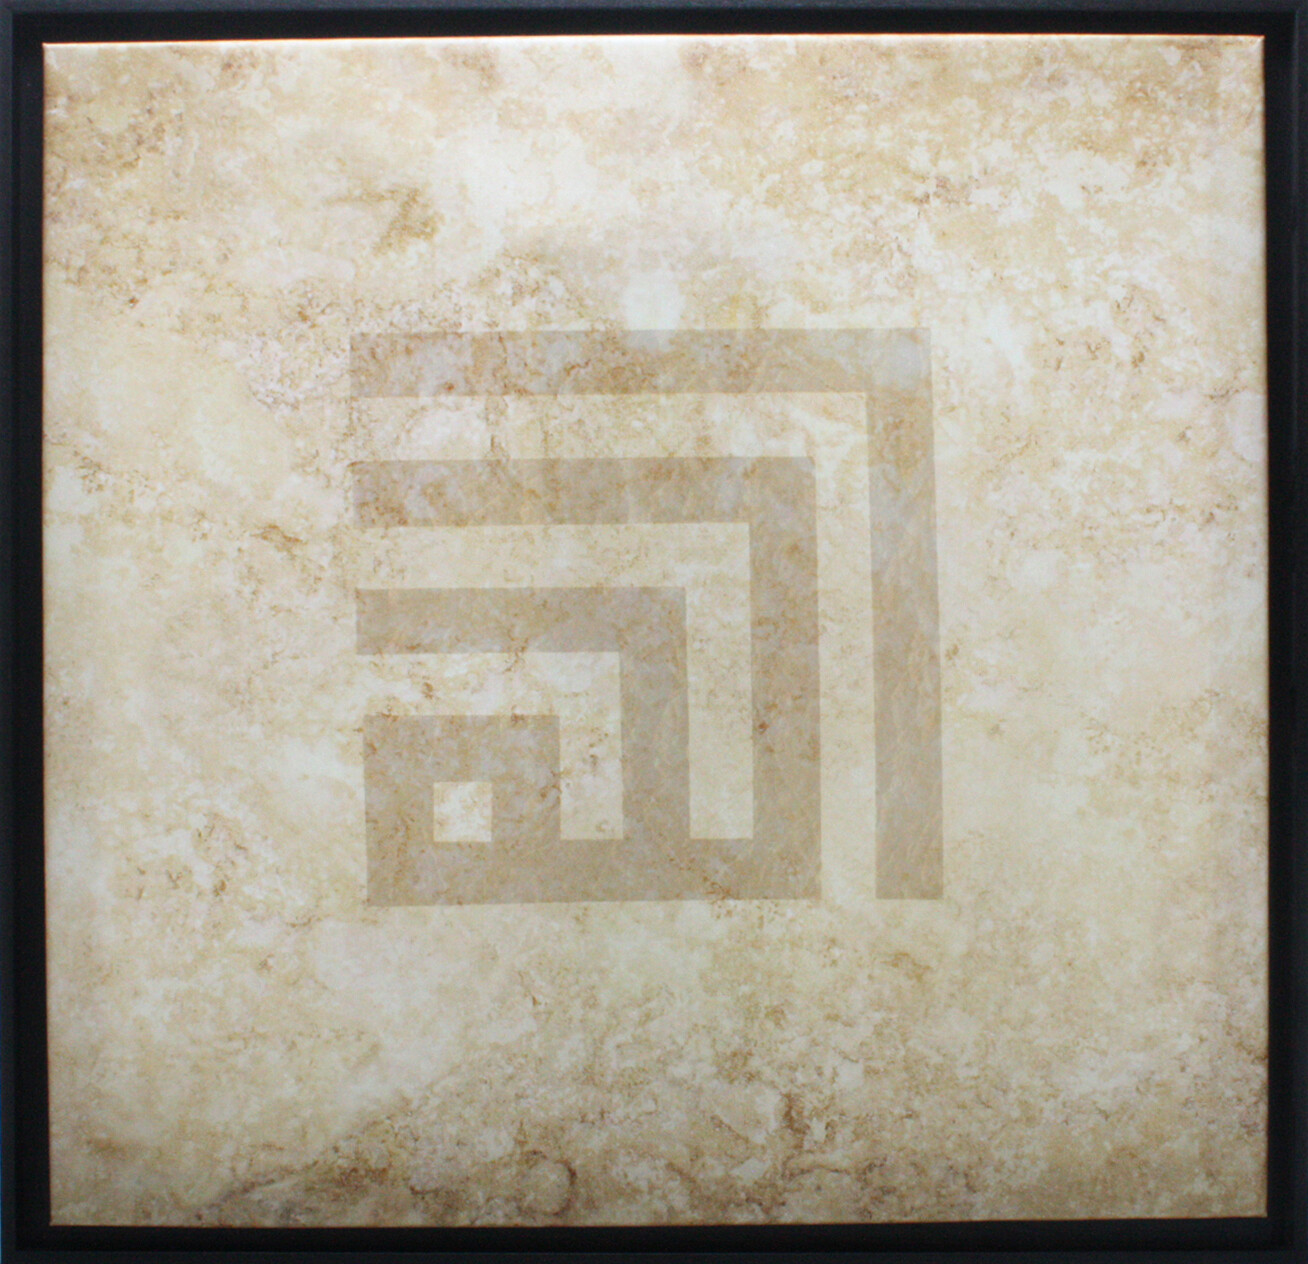 Allah Kufic Square Abstract Stone Design Original Giclée Canvas